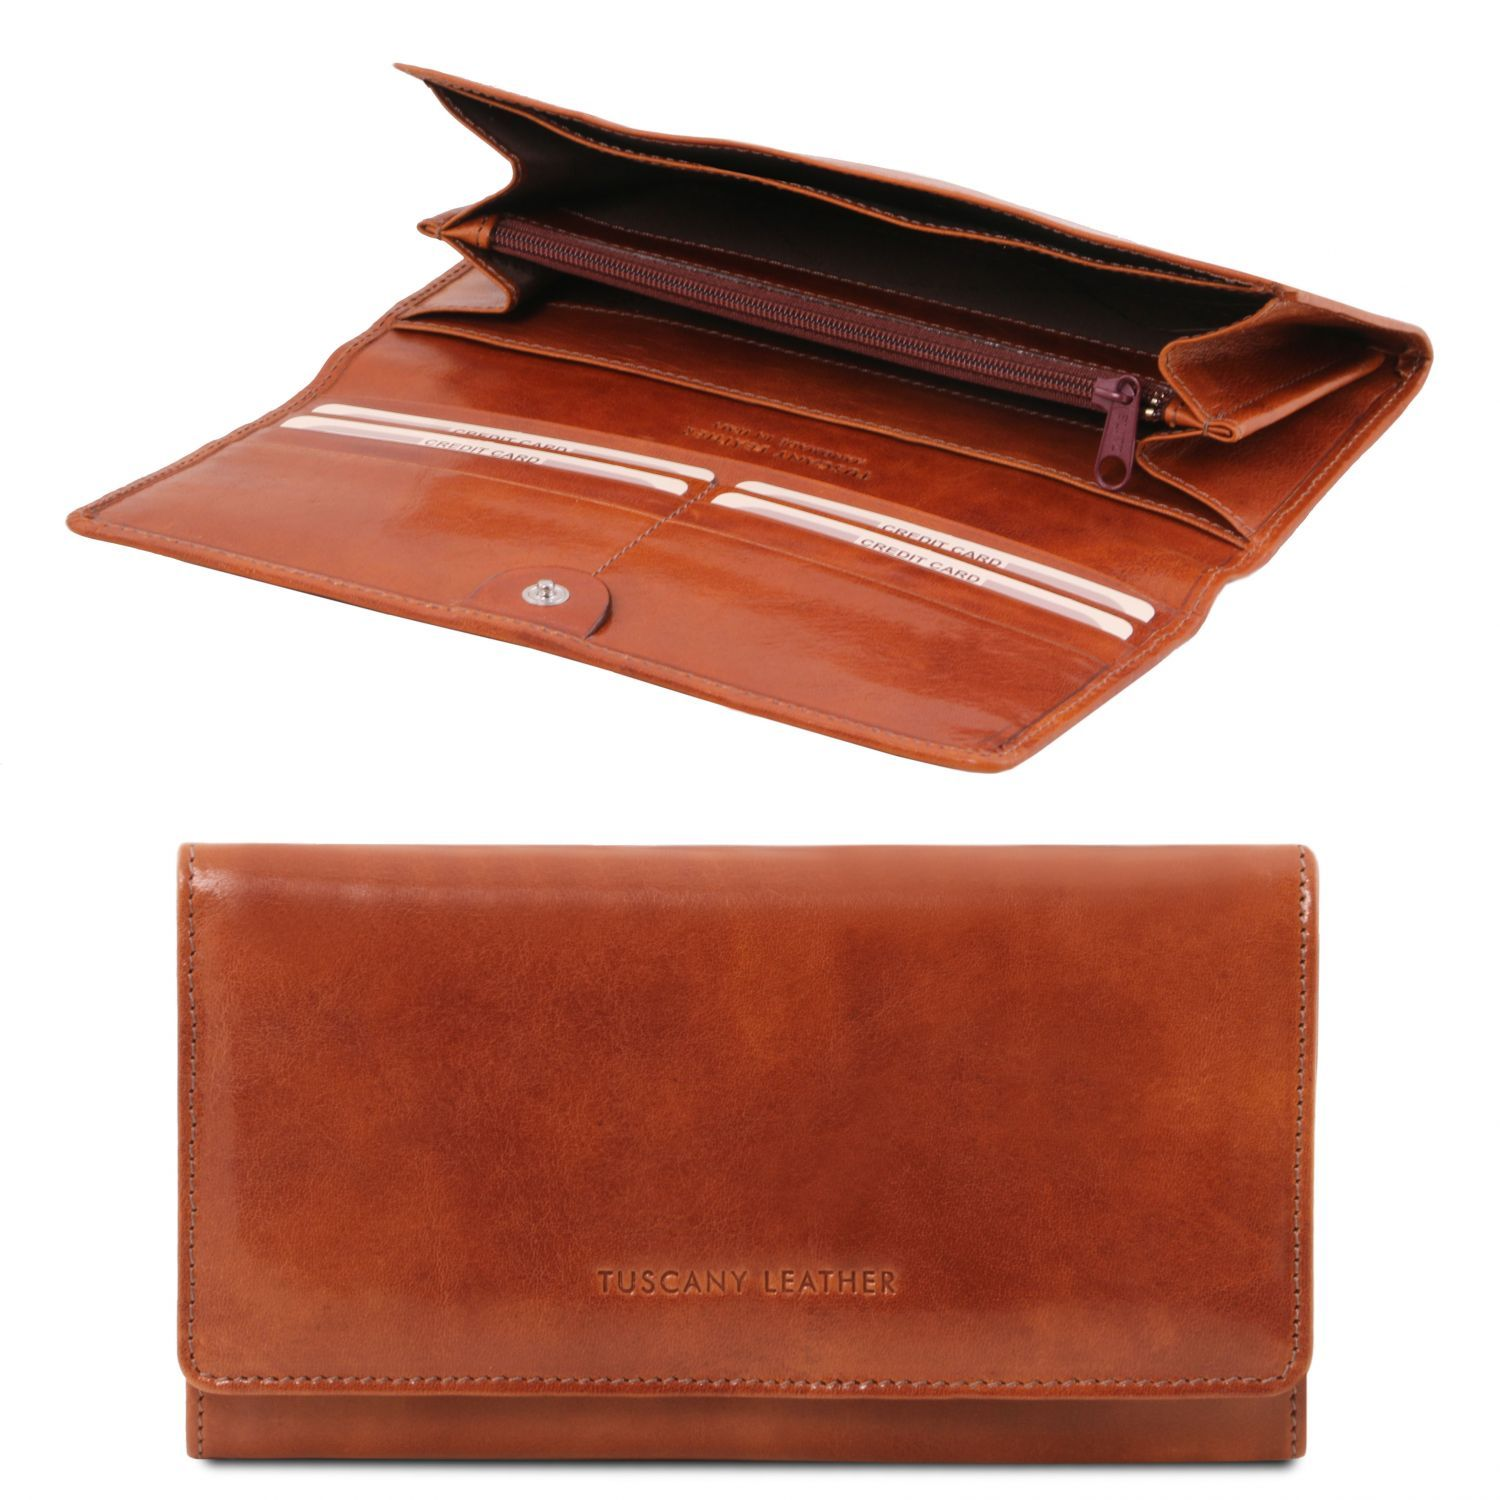 Exclusive leather accordion wallet (TL140787) - Leather wallets for women | DILUSSOBAGS